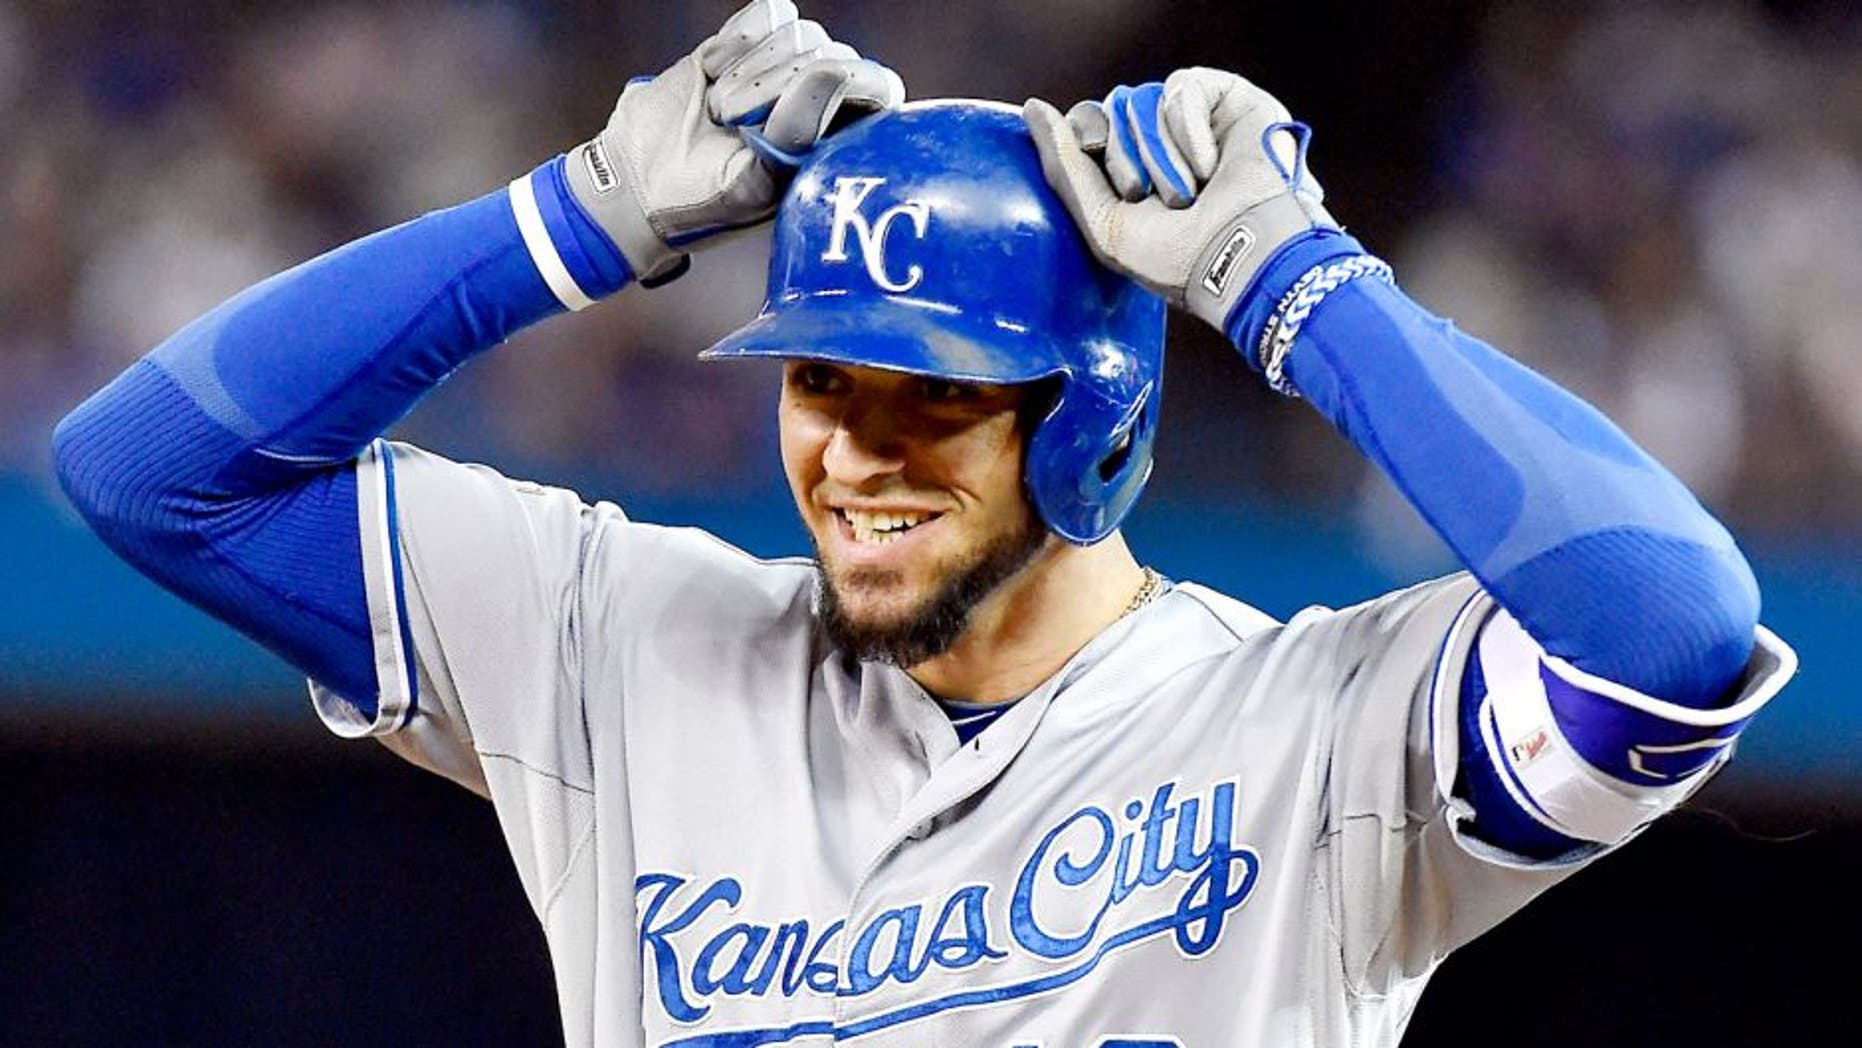 The Kansas City Royals' Paulo Orlando celebrates after hitting a single to load the bases in the eighth inning against the Toronto Blue Jays during Game 4 of the ALCS on Tuesday, Oct. 20, 2015, at Rogers Centre in Toronto. (John Sleezer/Kansas City Star/TNS via Getty Images)